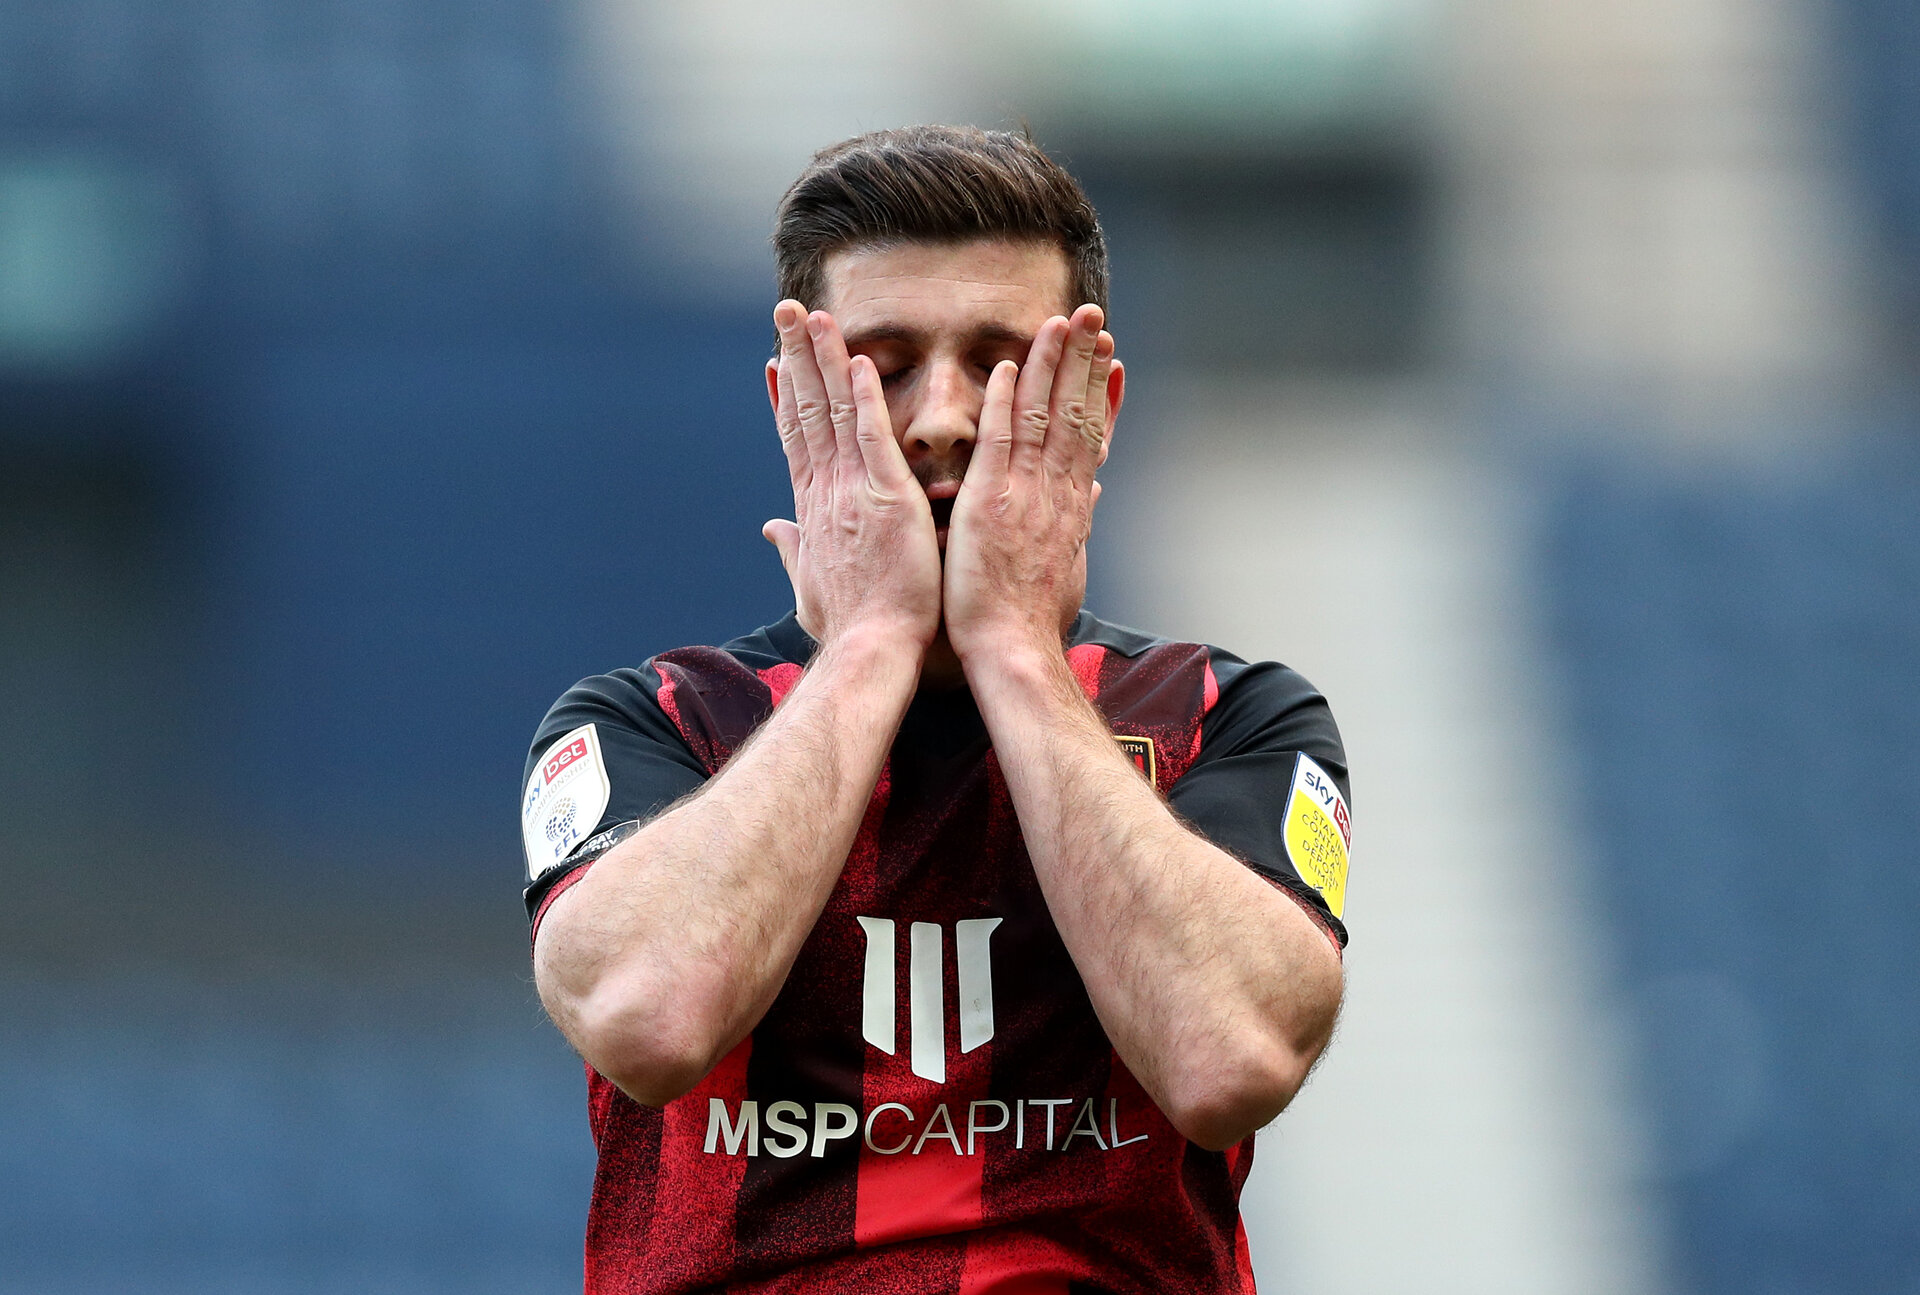 PRESTON, ENGLAND - MARCH 06: Shane Long of Bournemouth looks on dejected during the Sky Bet Championship match between Preston North End and AFC Bournemouth at Deepdale on March 06, 2021 in Preston, England. Sporting stadiums around the UK remain under strict restrictions due to the Coronavirus Pandemic as Government social distancing laws prohibit fans inside venues resulting in games being played behind closed doors. (Photo by Jan Kruger/Getty Images)